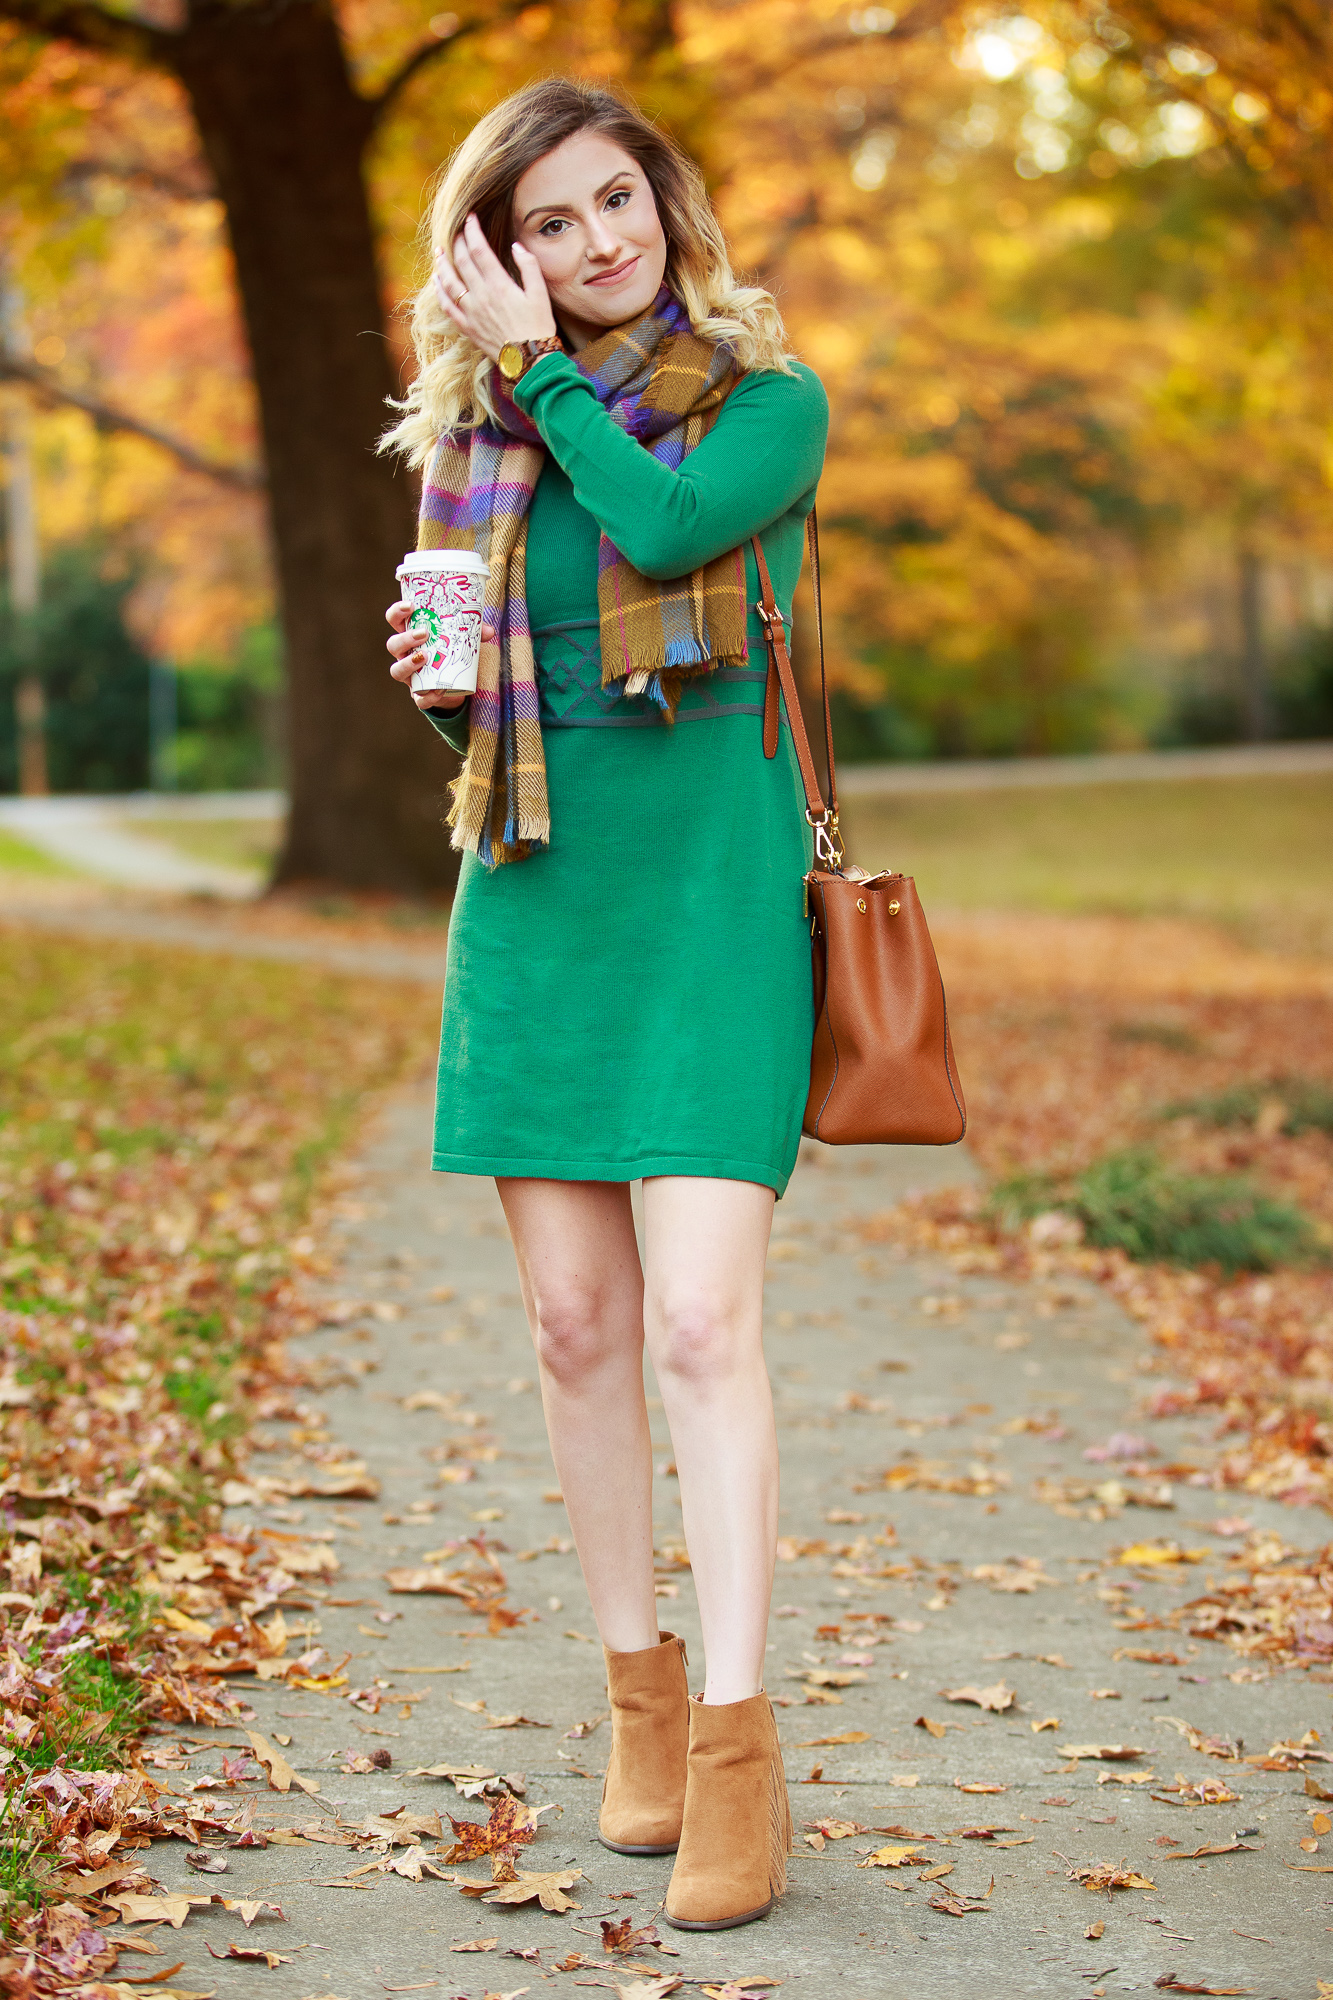 North Carolina fashion and lifestyle blogger Jessica Linn wearing a sweater dress from Aventura. Aventura clothes are made from organic sustainable materials promoting sustainable fashion. Also wearing fringe booties from Forever21, a green plaid scarf from Target, and a Michael Kors purse.